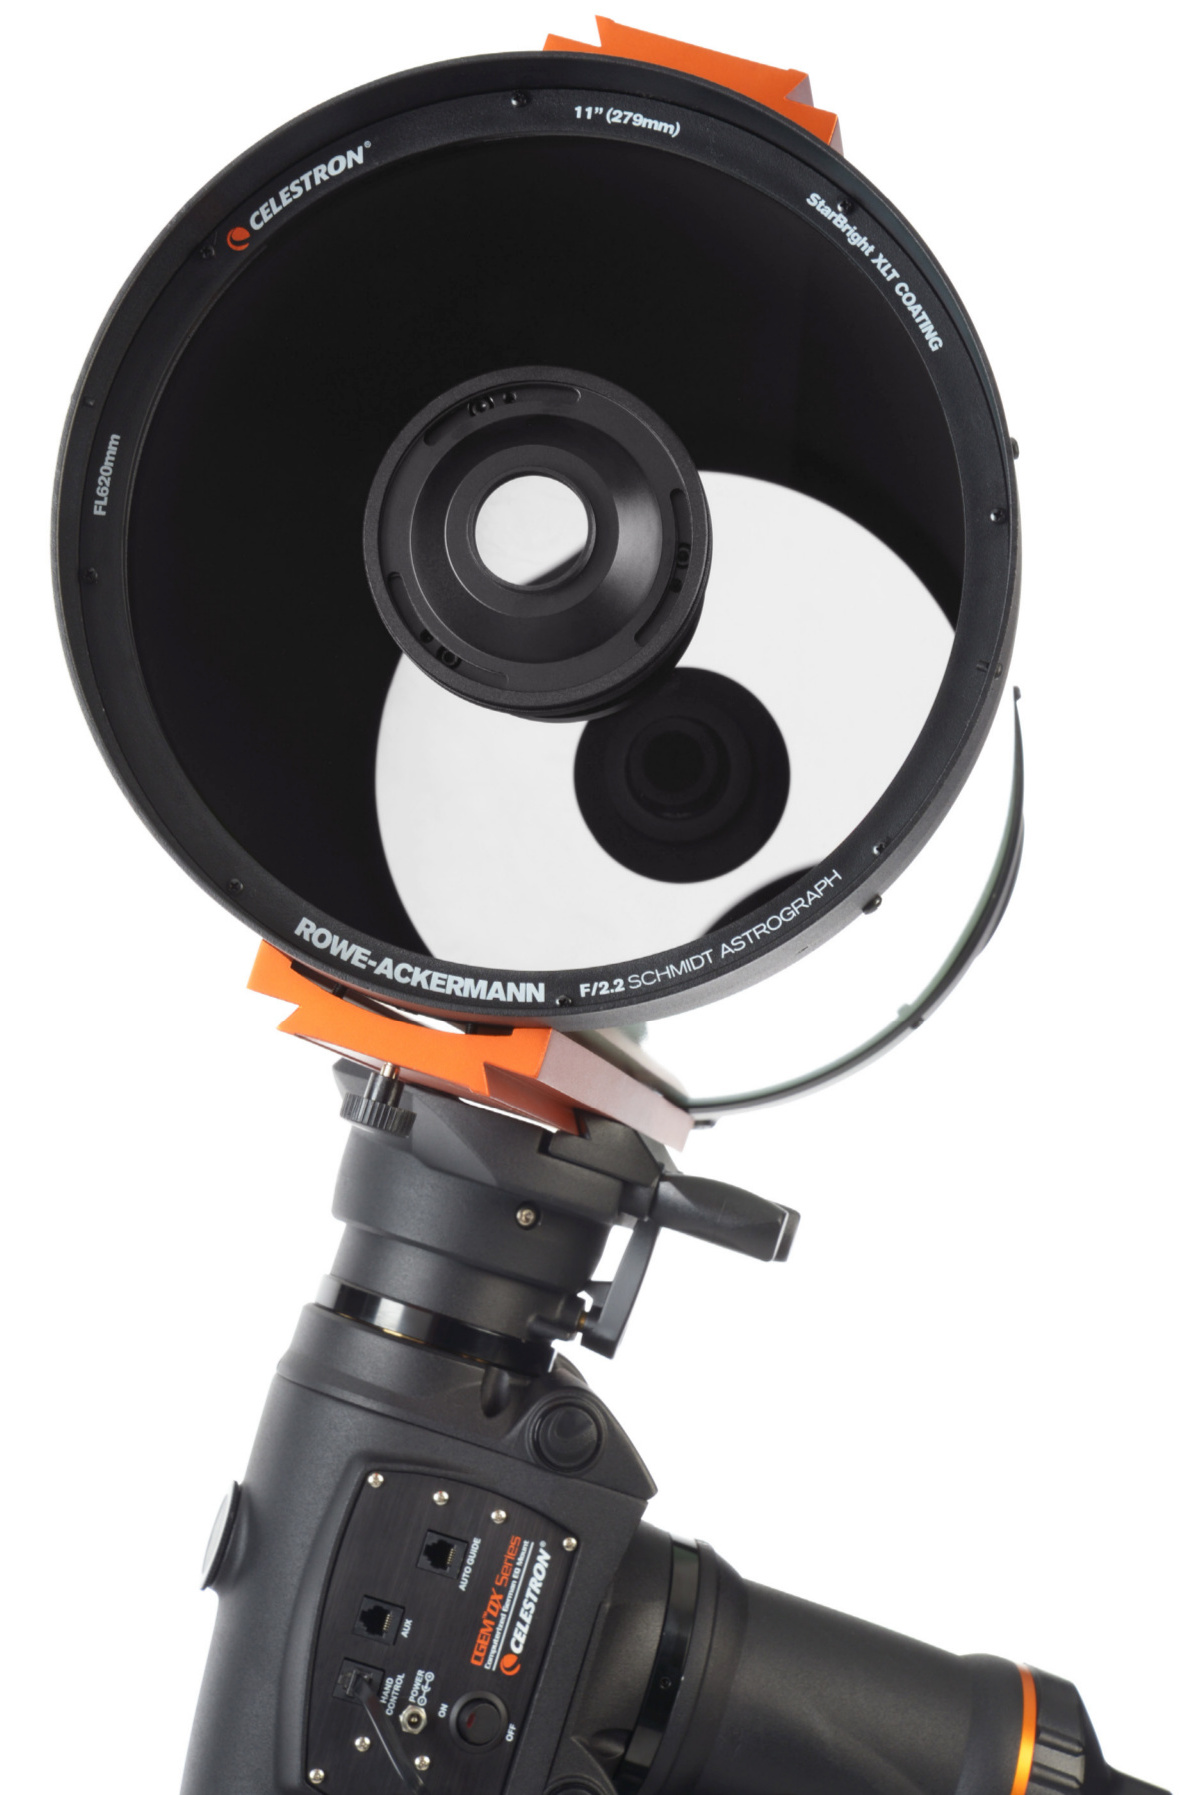 Celestron's new 280mm (11-inch) aperture f/2.2 Rowe-Ackermann Schmidt Astrograph is a heavyweight imaging system in every sense of the word. Its 84cm-long, 32cm diameter optical tube tips the scales at 43lb (19.5kg), so it requires a CGEM-DX or GGE Pro-class German equatorial mount or larger. Full length Losmandy-style D-plate mounting bars are provided top and bottom for mounting the OTA and a separate guidescope. Image credit: AN.